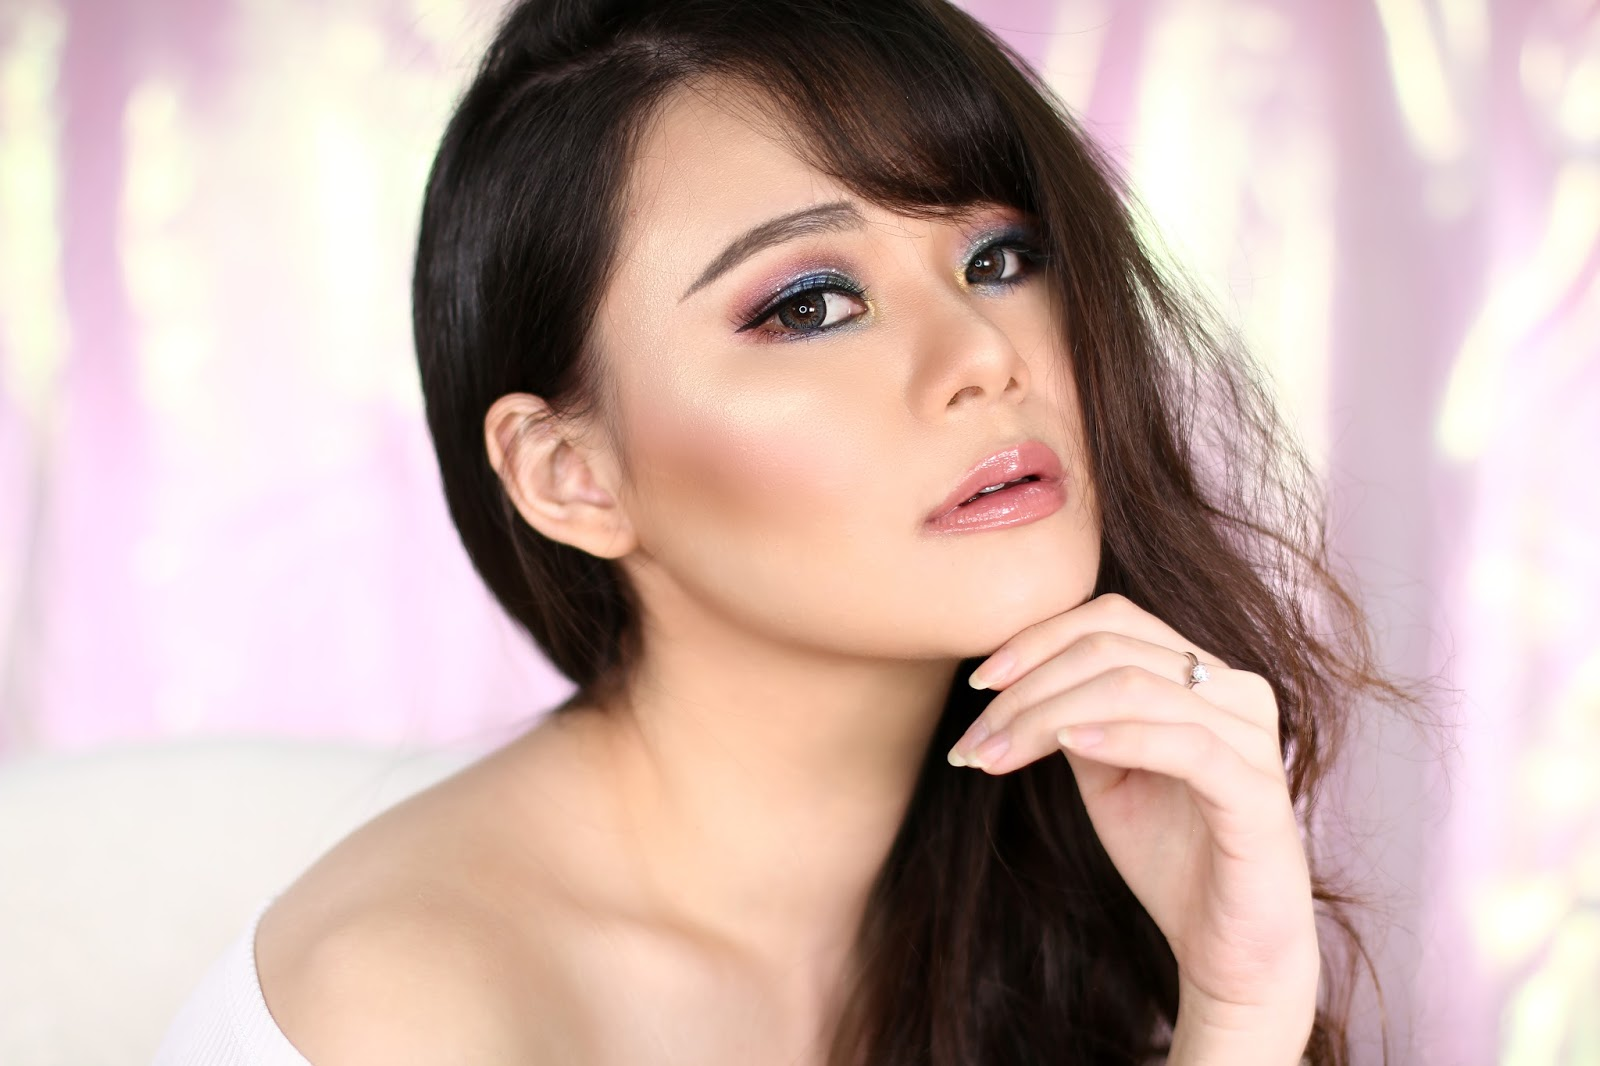 makeup, makeup tutorial, tutorial makeup, glam makeup unicorn makeup, colorful makeup, glam, beauty, jean milka, beauty blogger indonesia